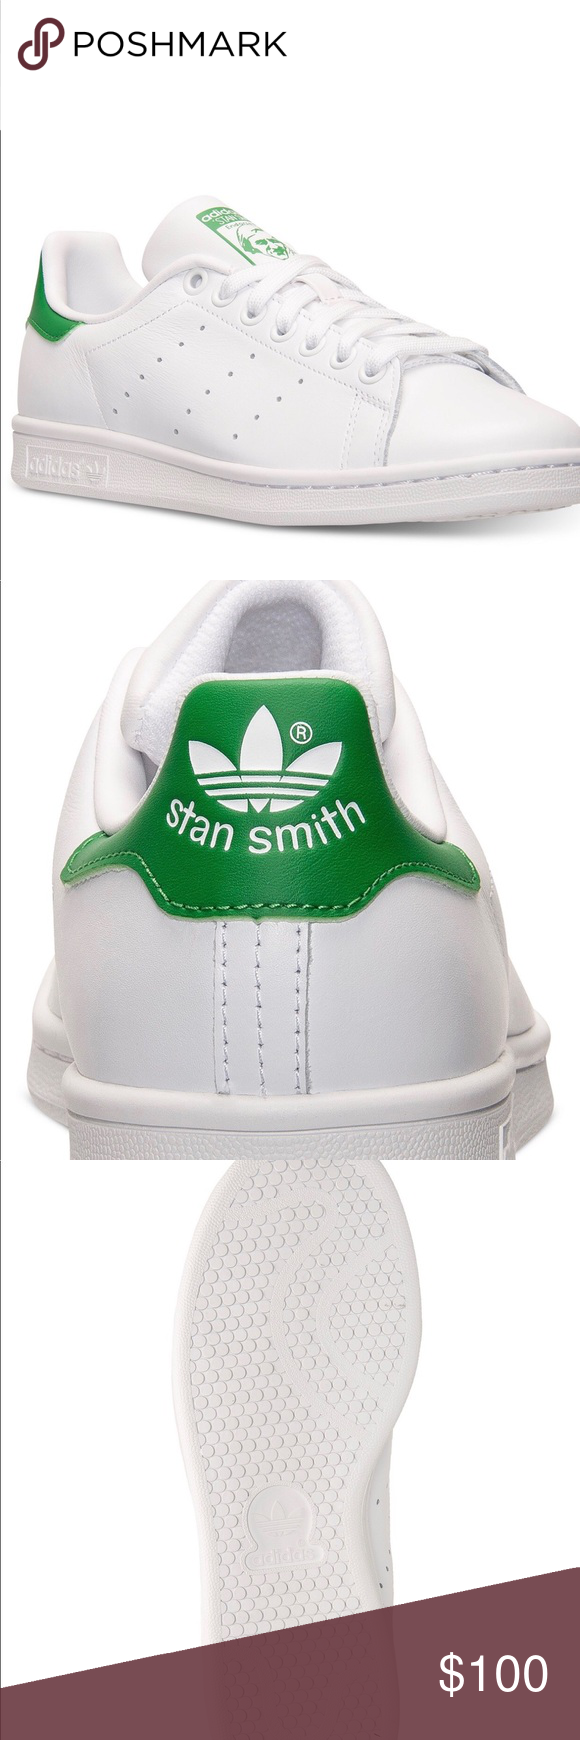 Adidas Verde stan smith for for for Mujer. nuevo With box. Talla 7.5, sold out 6e19f7